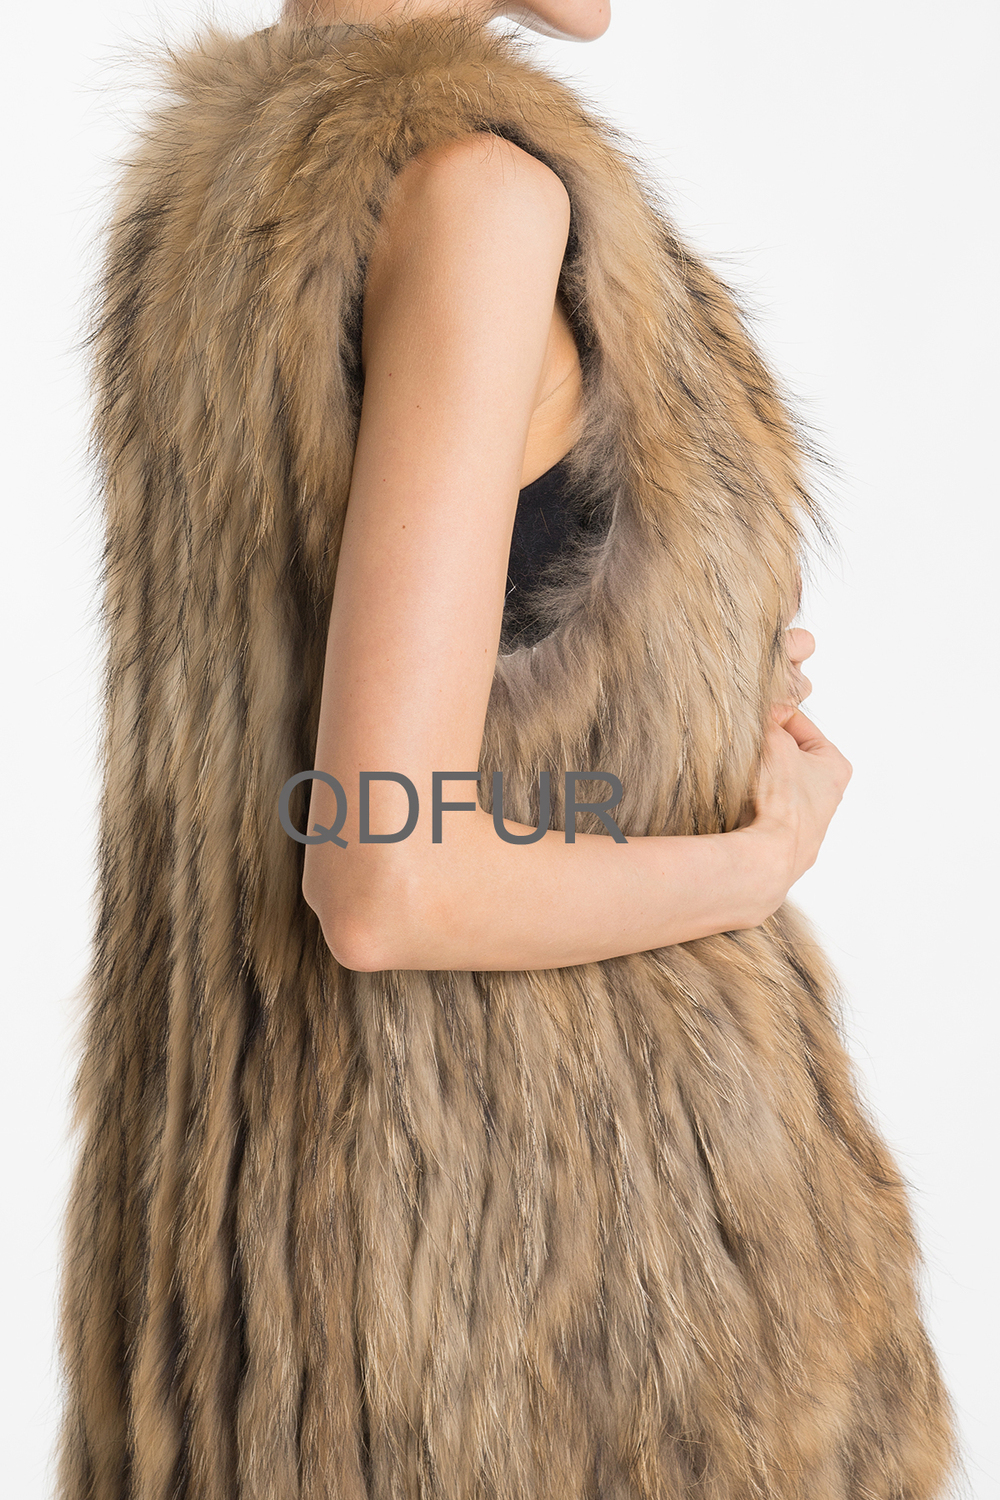 QD70727 Knitted Natural Brown Striped Raccoon Fur Sleeveless Woman Long Vest